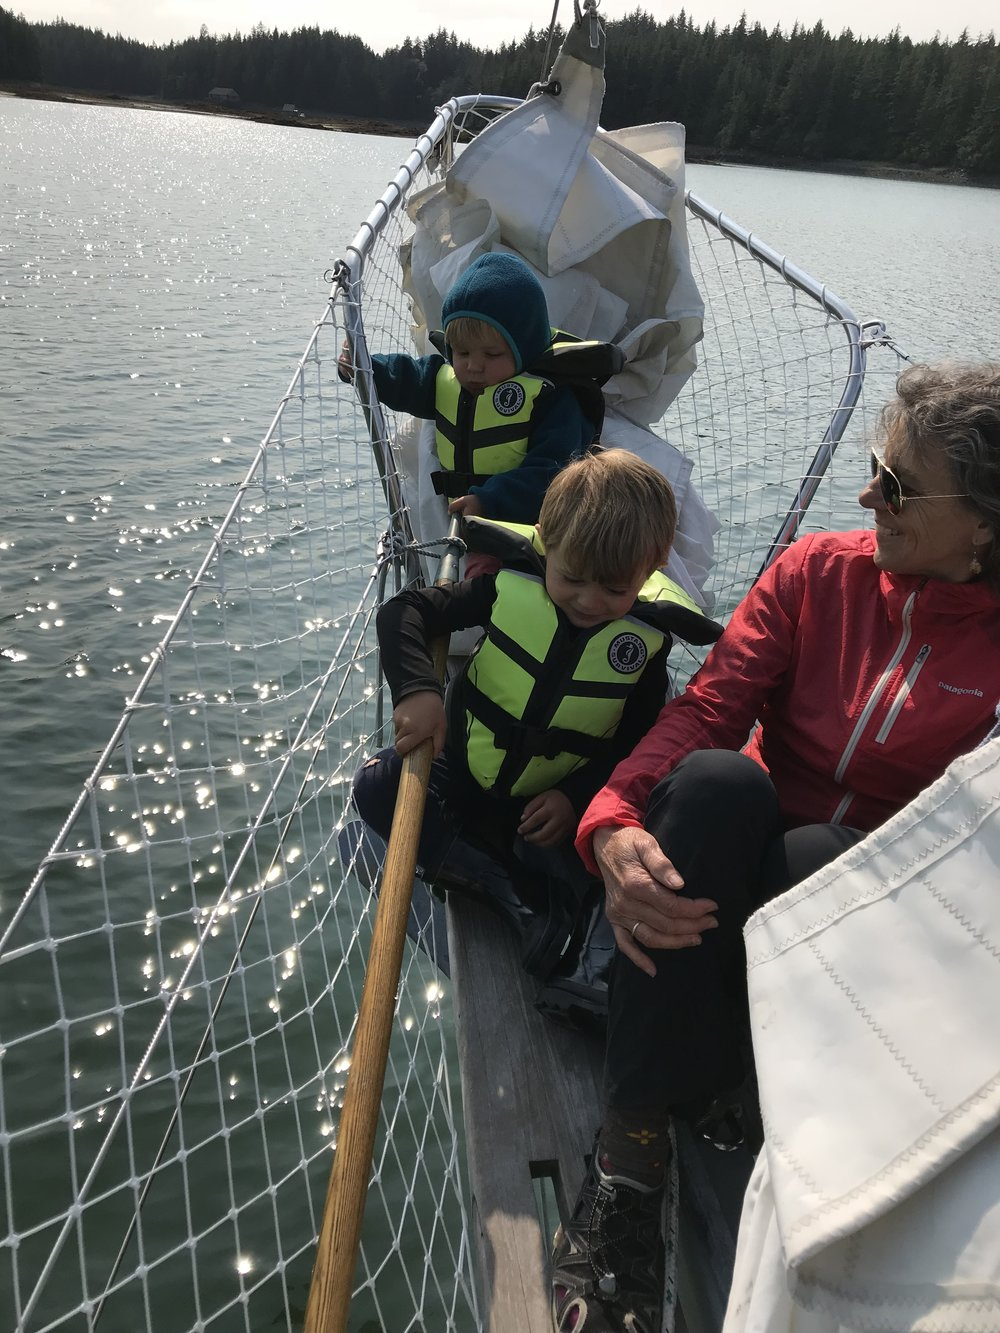 Grandma comfy in the bowsprit.